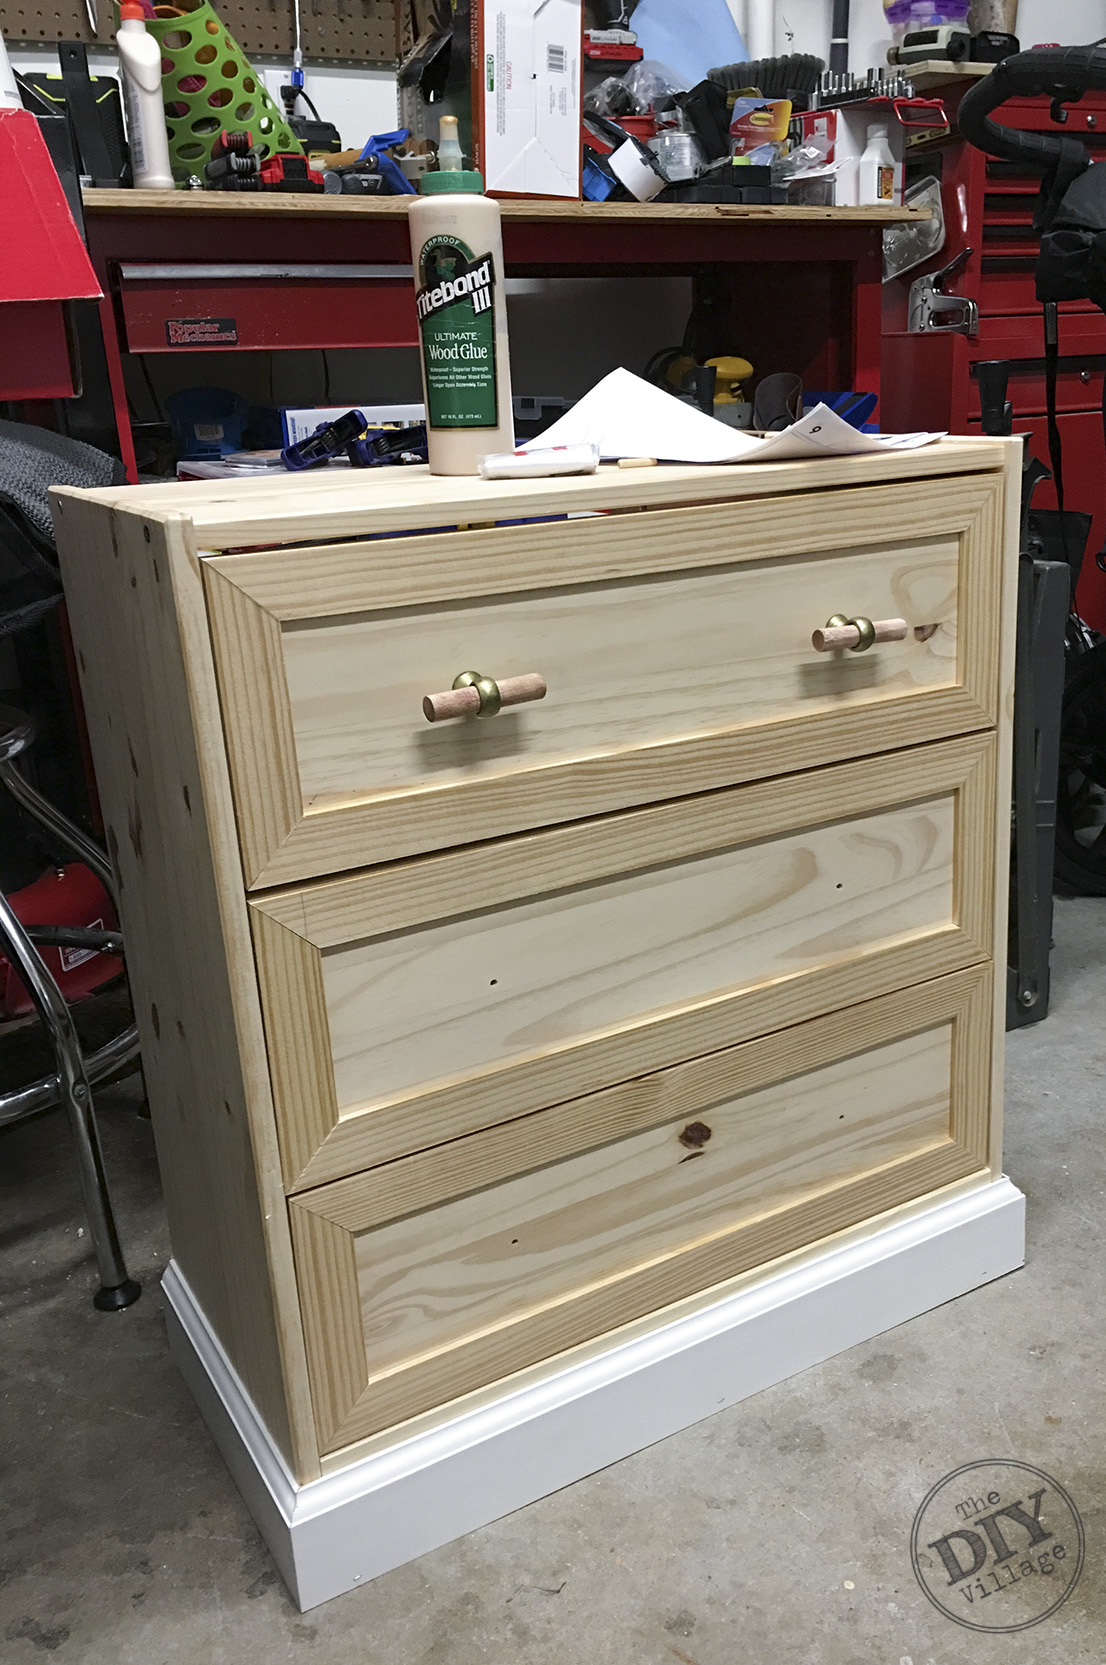 IKEA RAST Makeover from dresser to sophisticated nightstand. Easy and inexpensive project. LOVE this look, must try! #Ikeahack #Ikearast #rastmakeover #nightstand